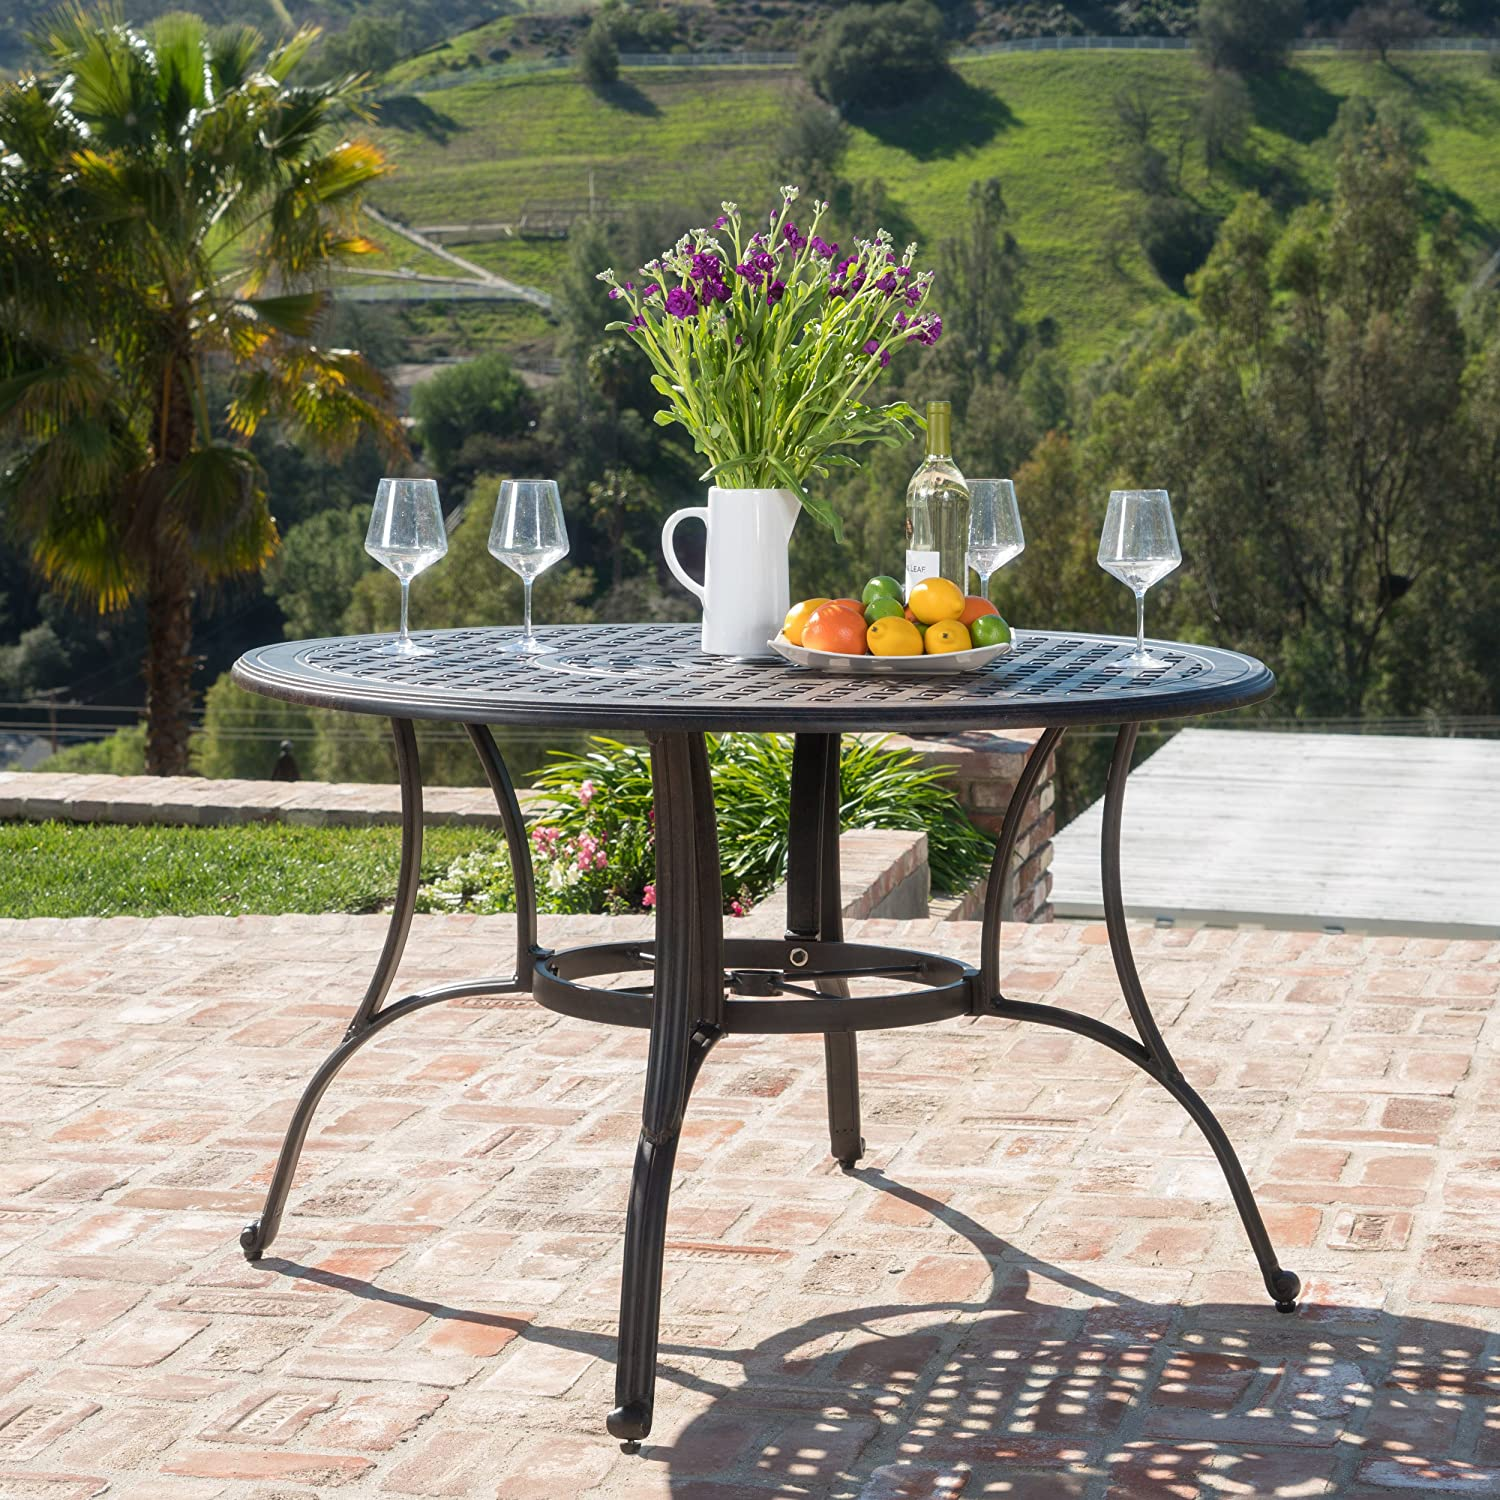 Christopher Knight Home 300276 Calandra | Cast Aluminum Outdoor Circular Dining Table | in Bronze